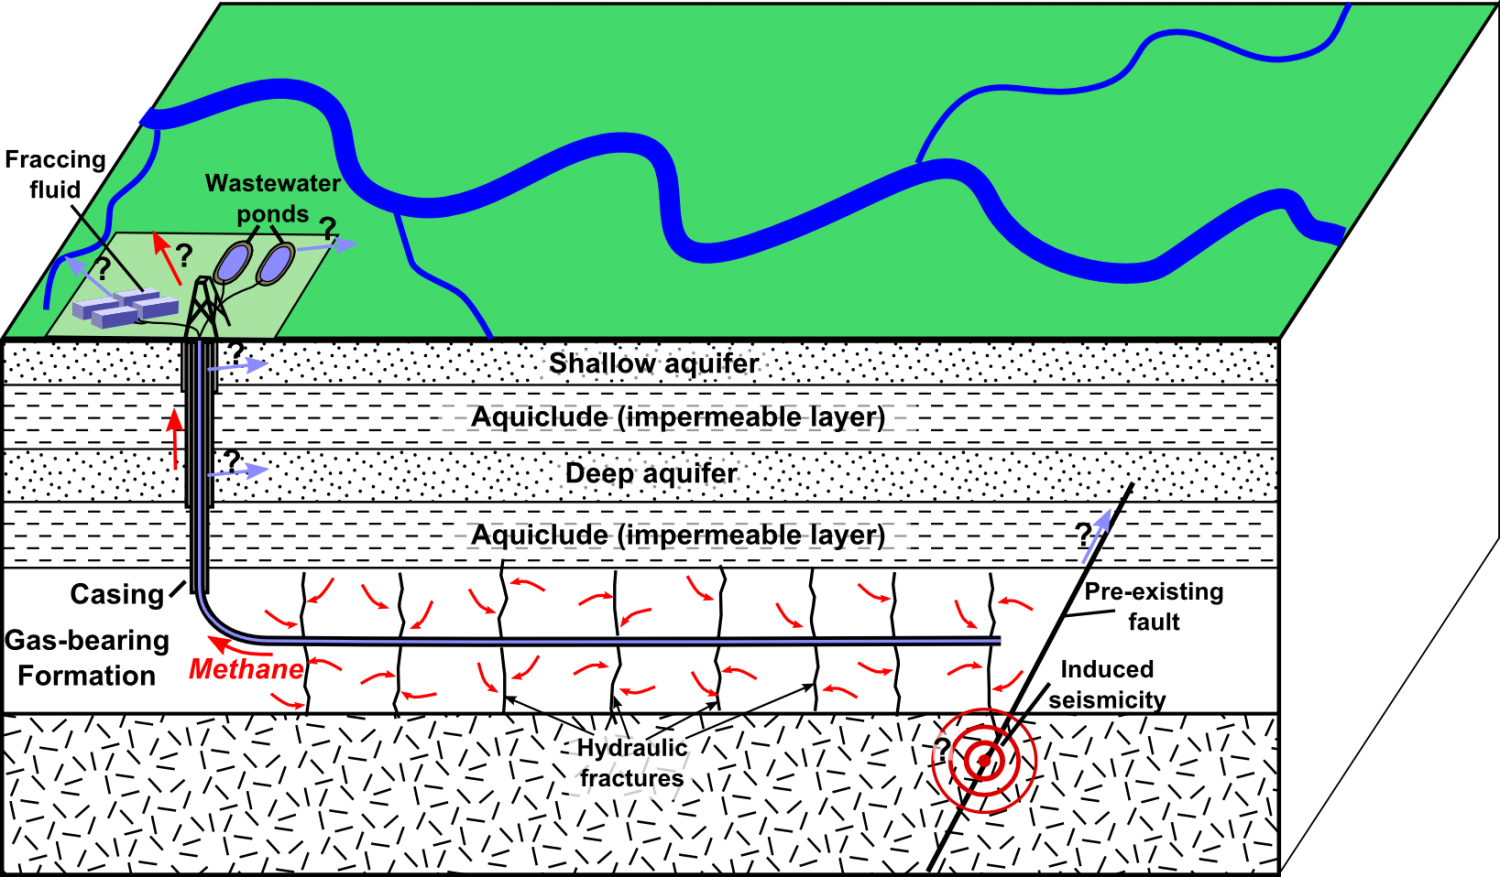 Environmental impact of hydraulic fracturing in the United States